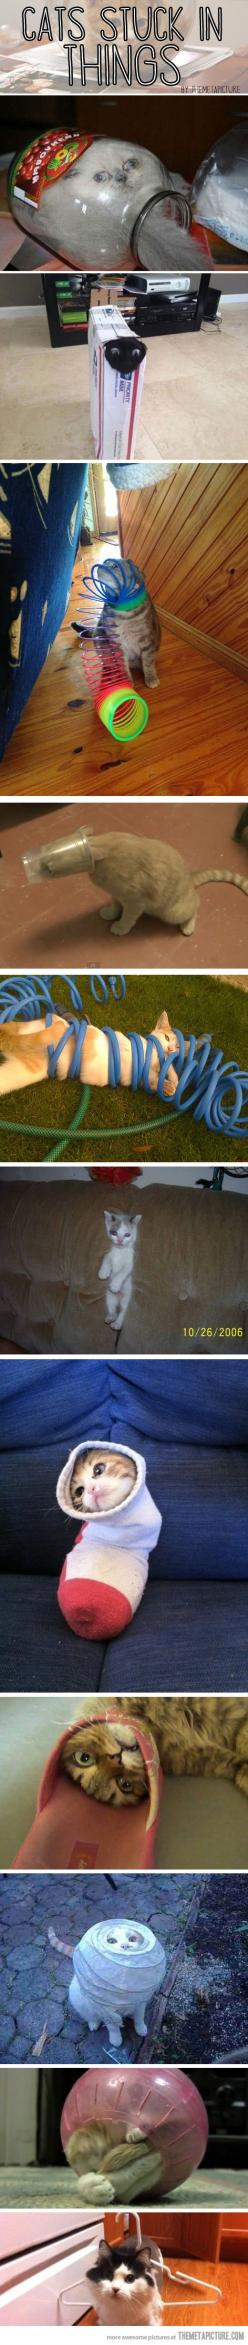 Cats stuck in things...After viewing this vast array of items that cats have gotten themselves stuck in, I think it's safe to say that cats aren't as smart as some people say they are.: Kitty Cat, Giggle, Cats Stuck, Silly Cats, Funny Cat, Crazy C